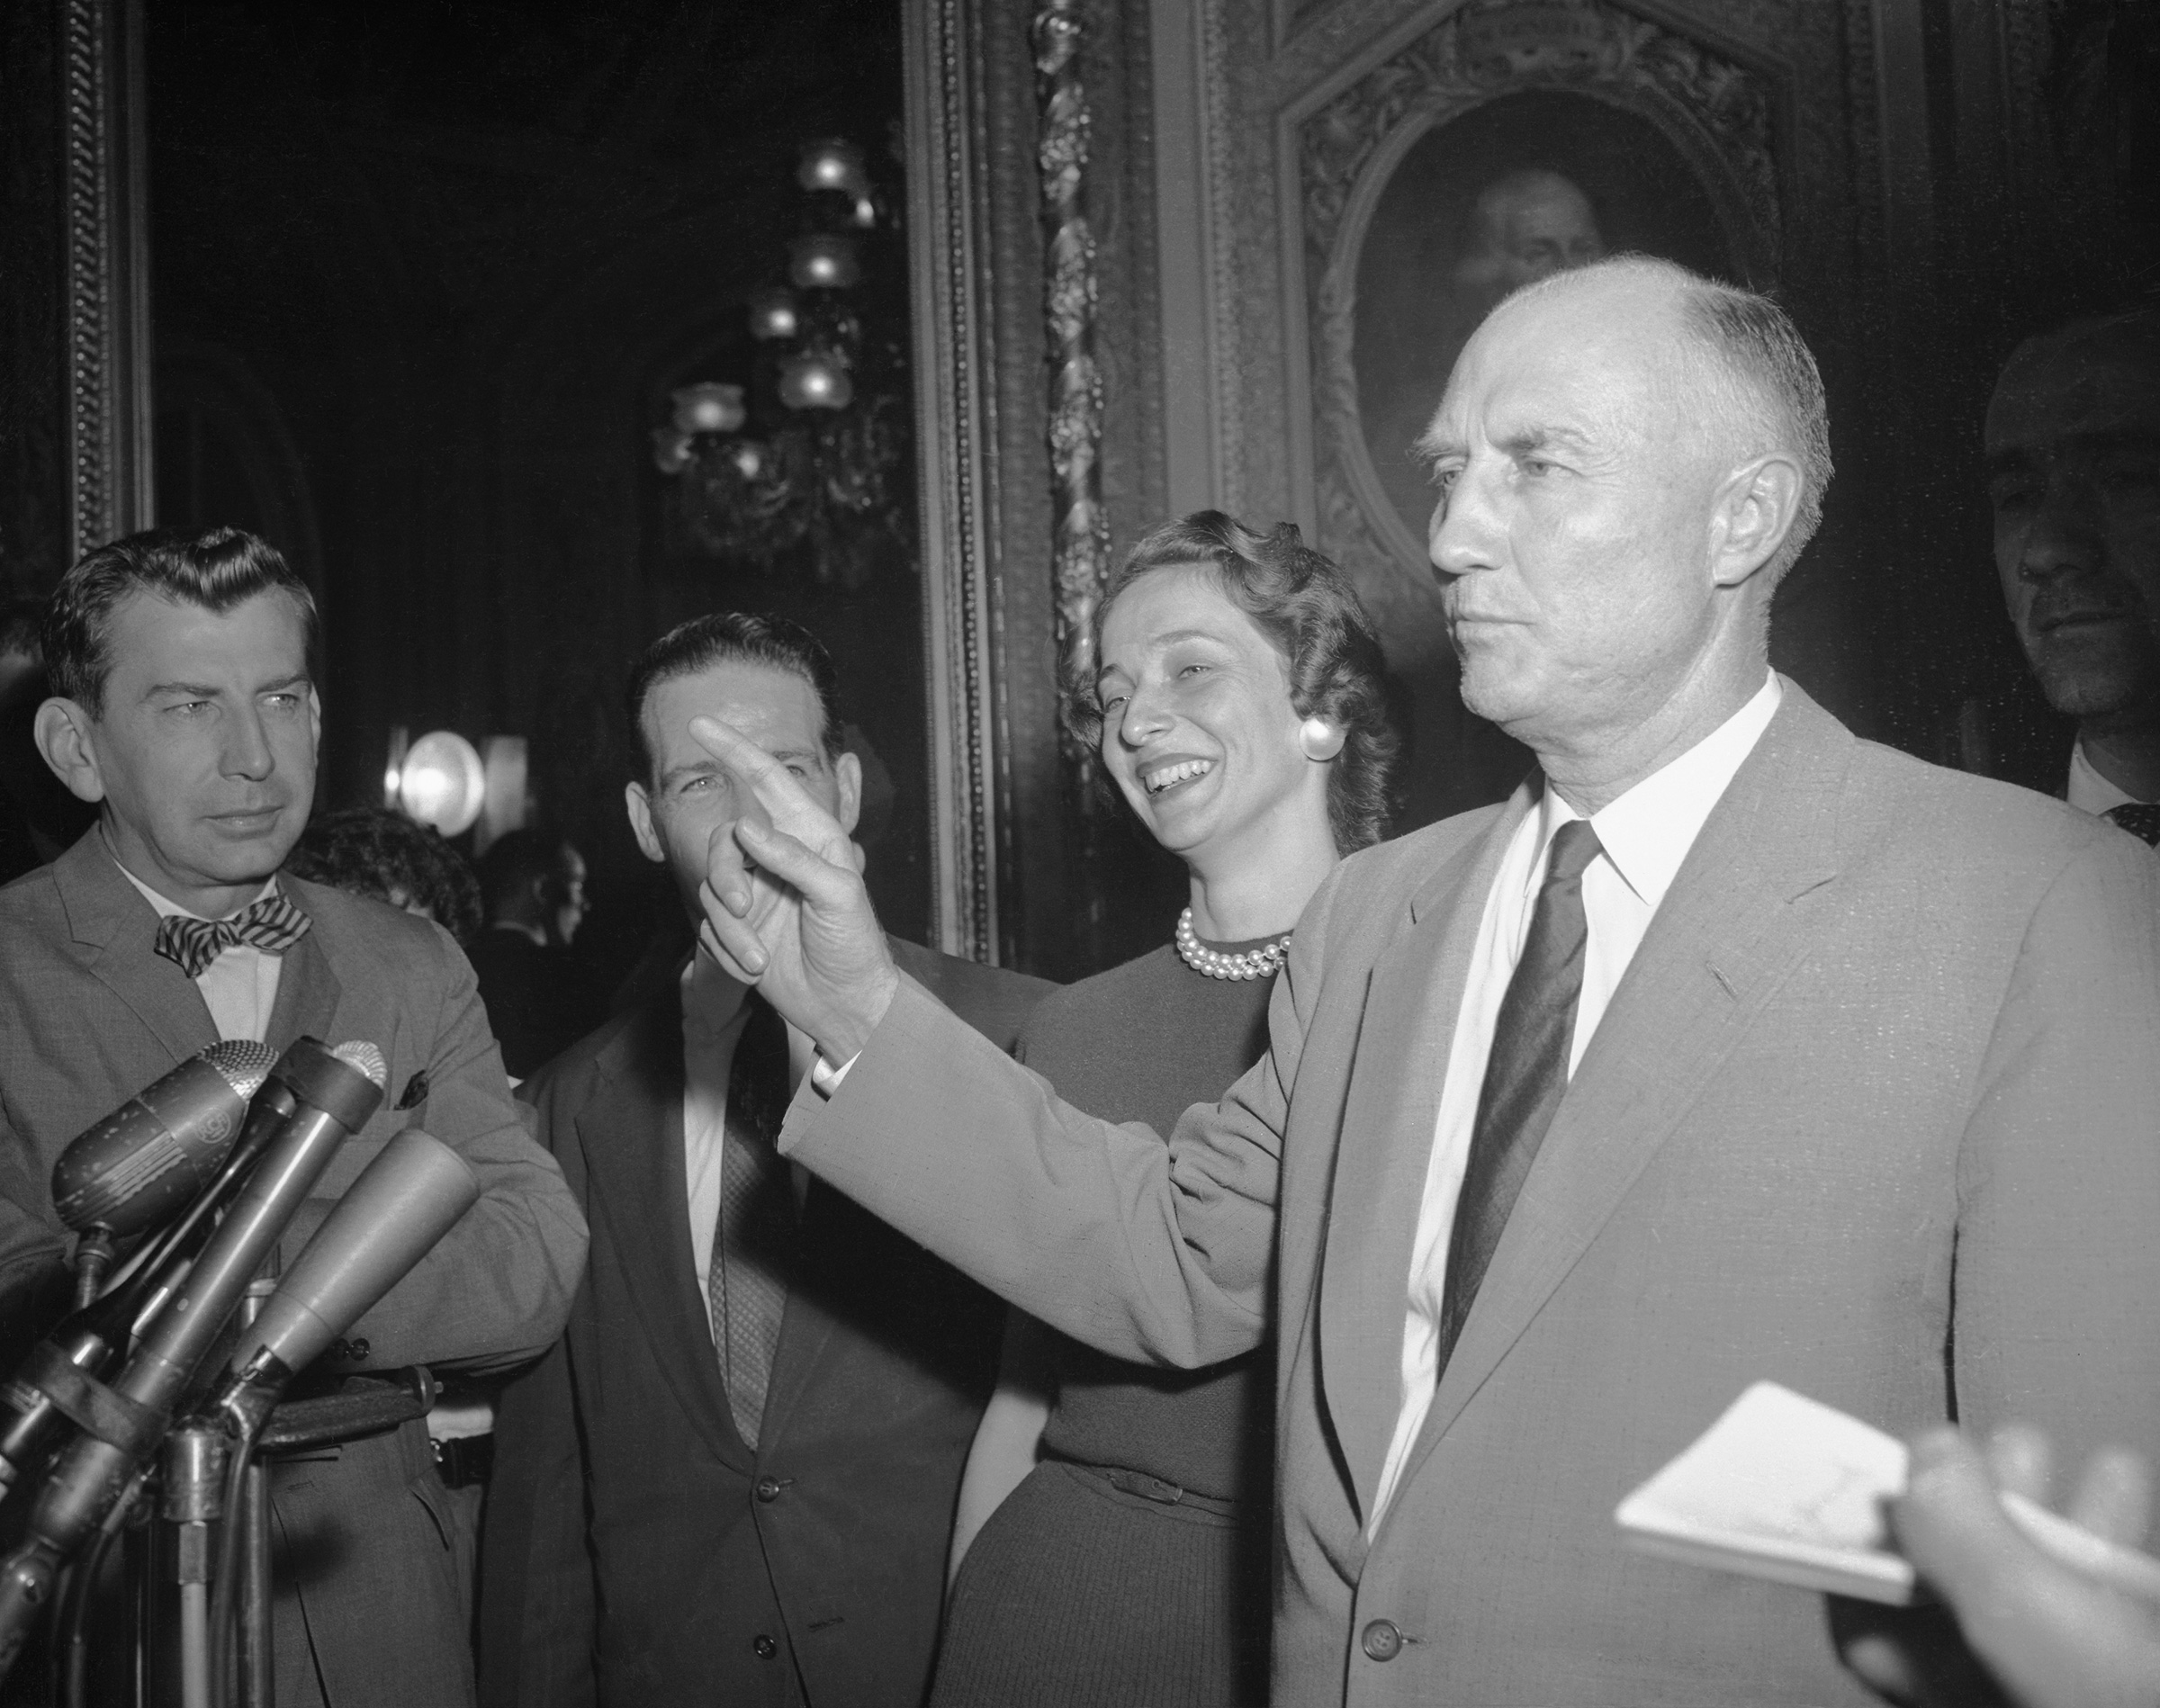 Sen. Strom Thurmond speaks with reporters after ending the longest filibuster on record — a 24-hour, 18-minute talkathon against the Civil Rights Act of 1957 in the Senate Chamber — Washington, D.C. on Aug. 29, 1957.